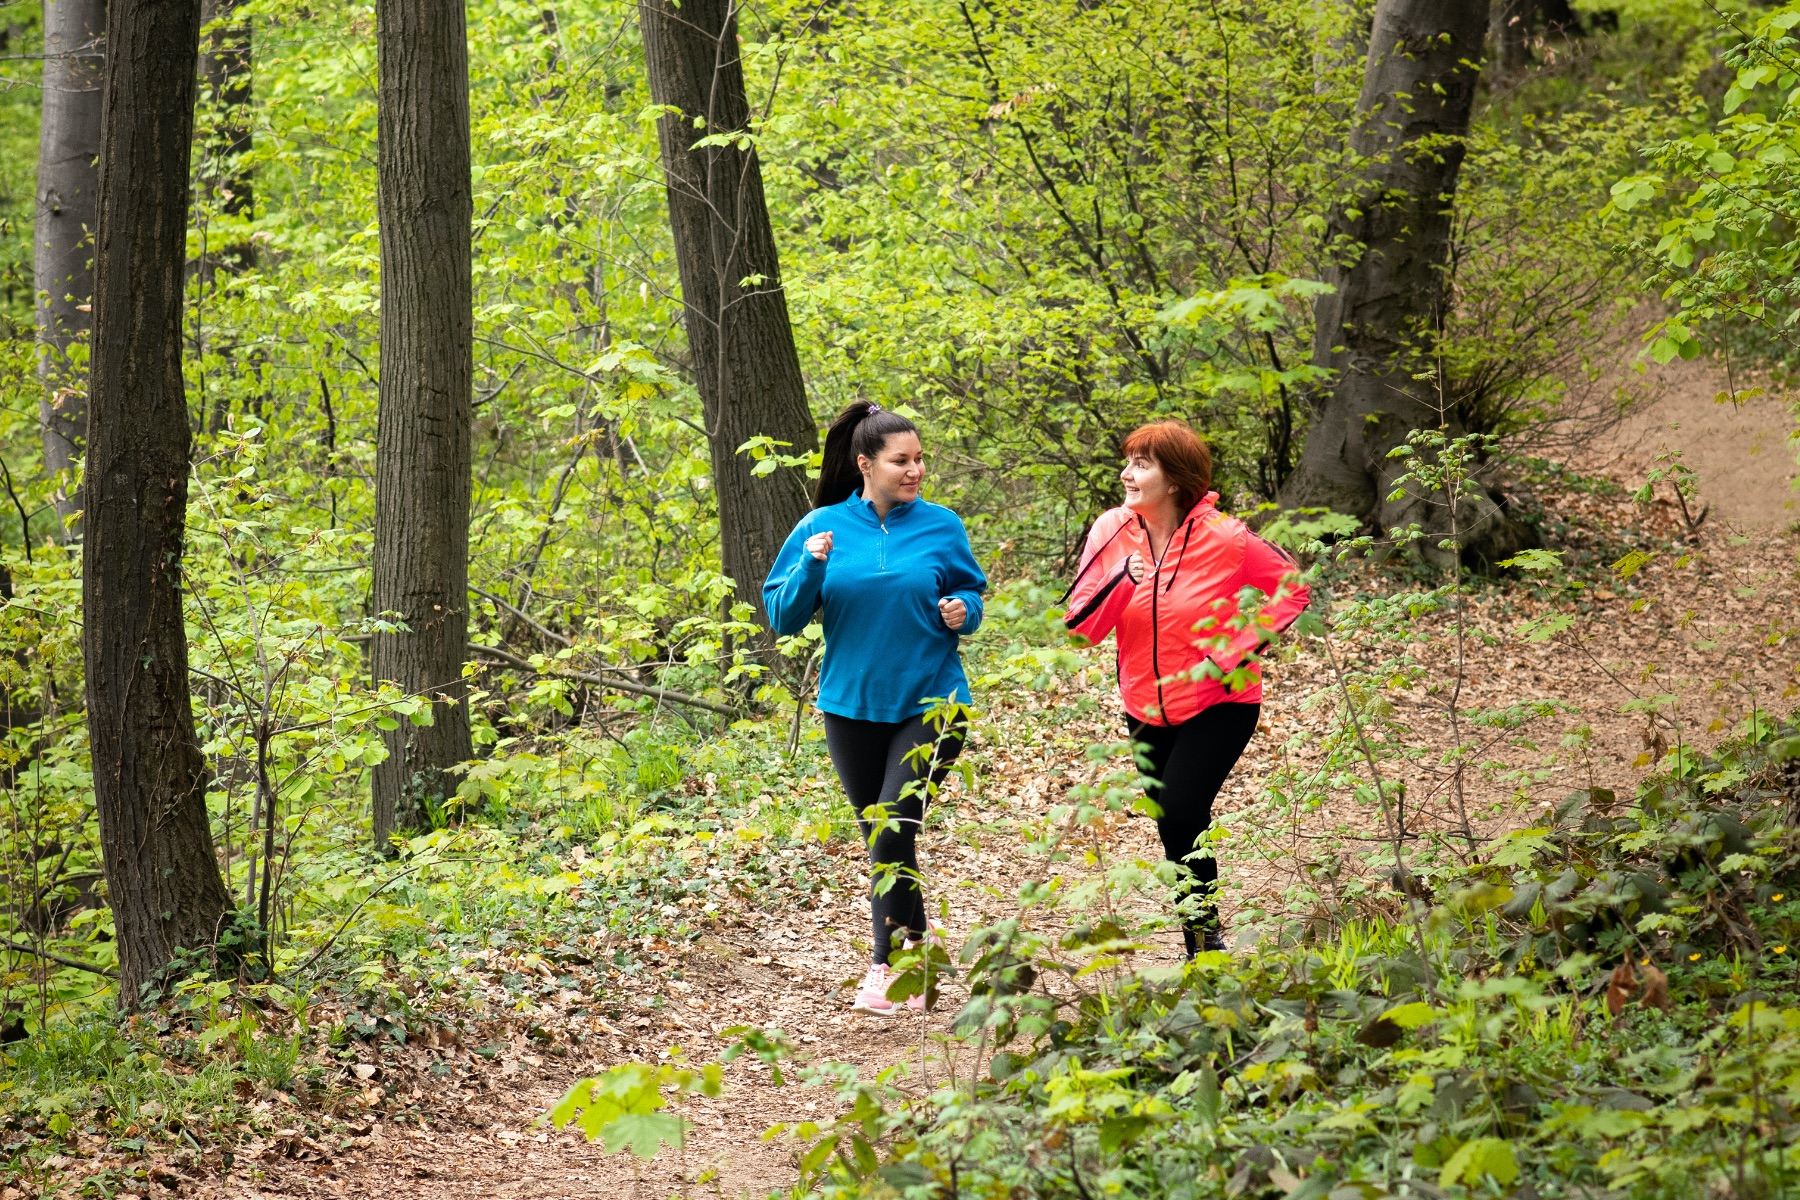 Two women jogging through woods